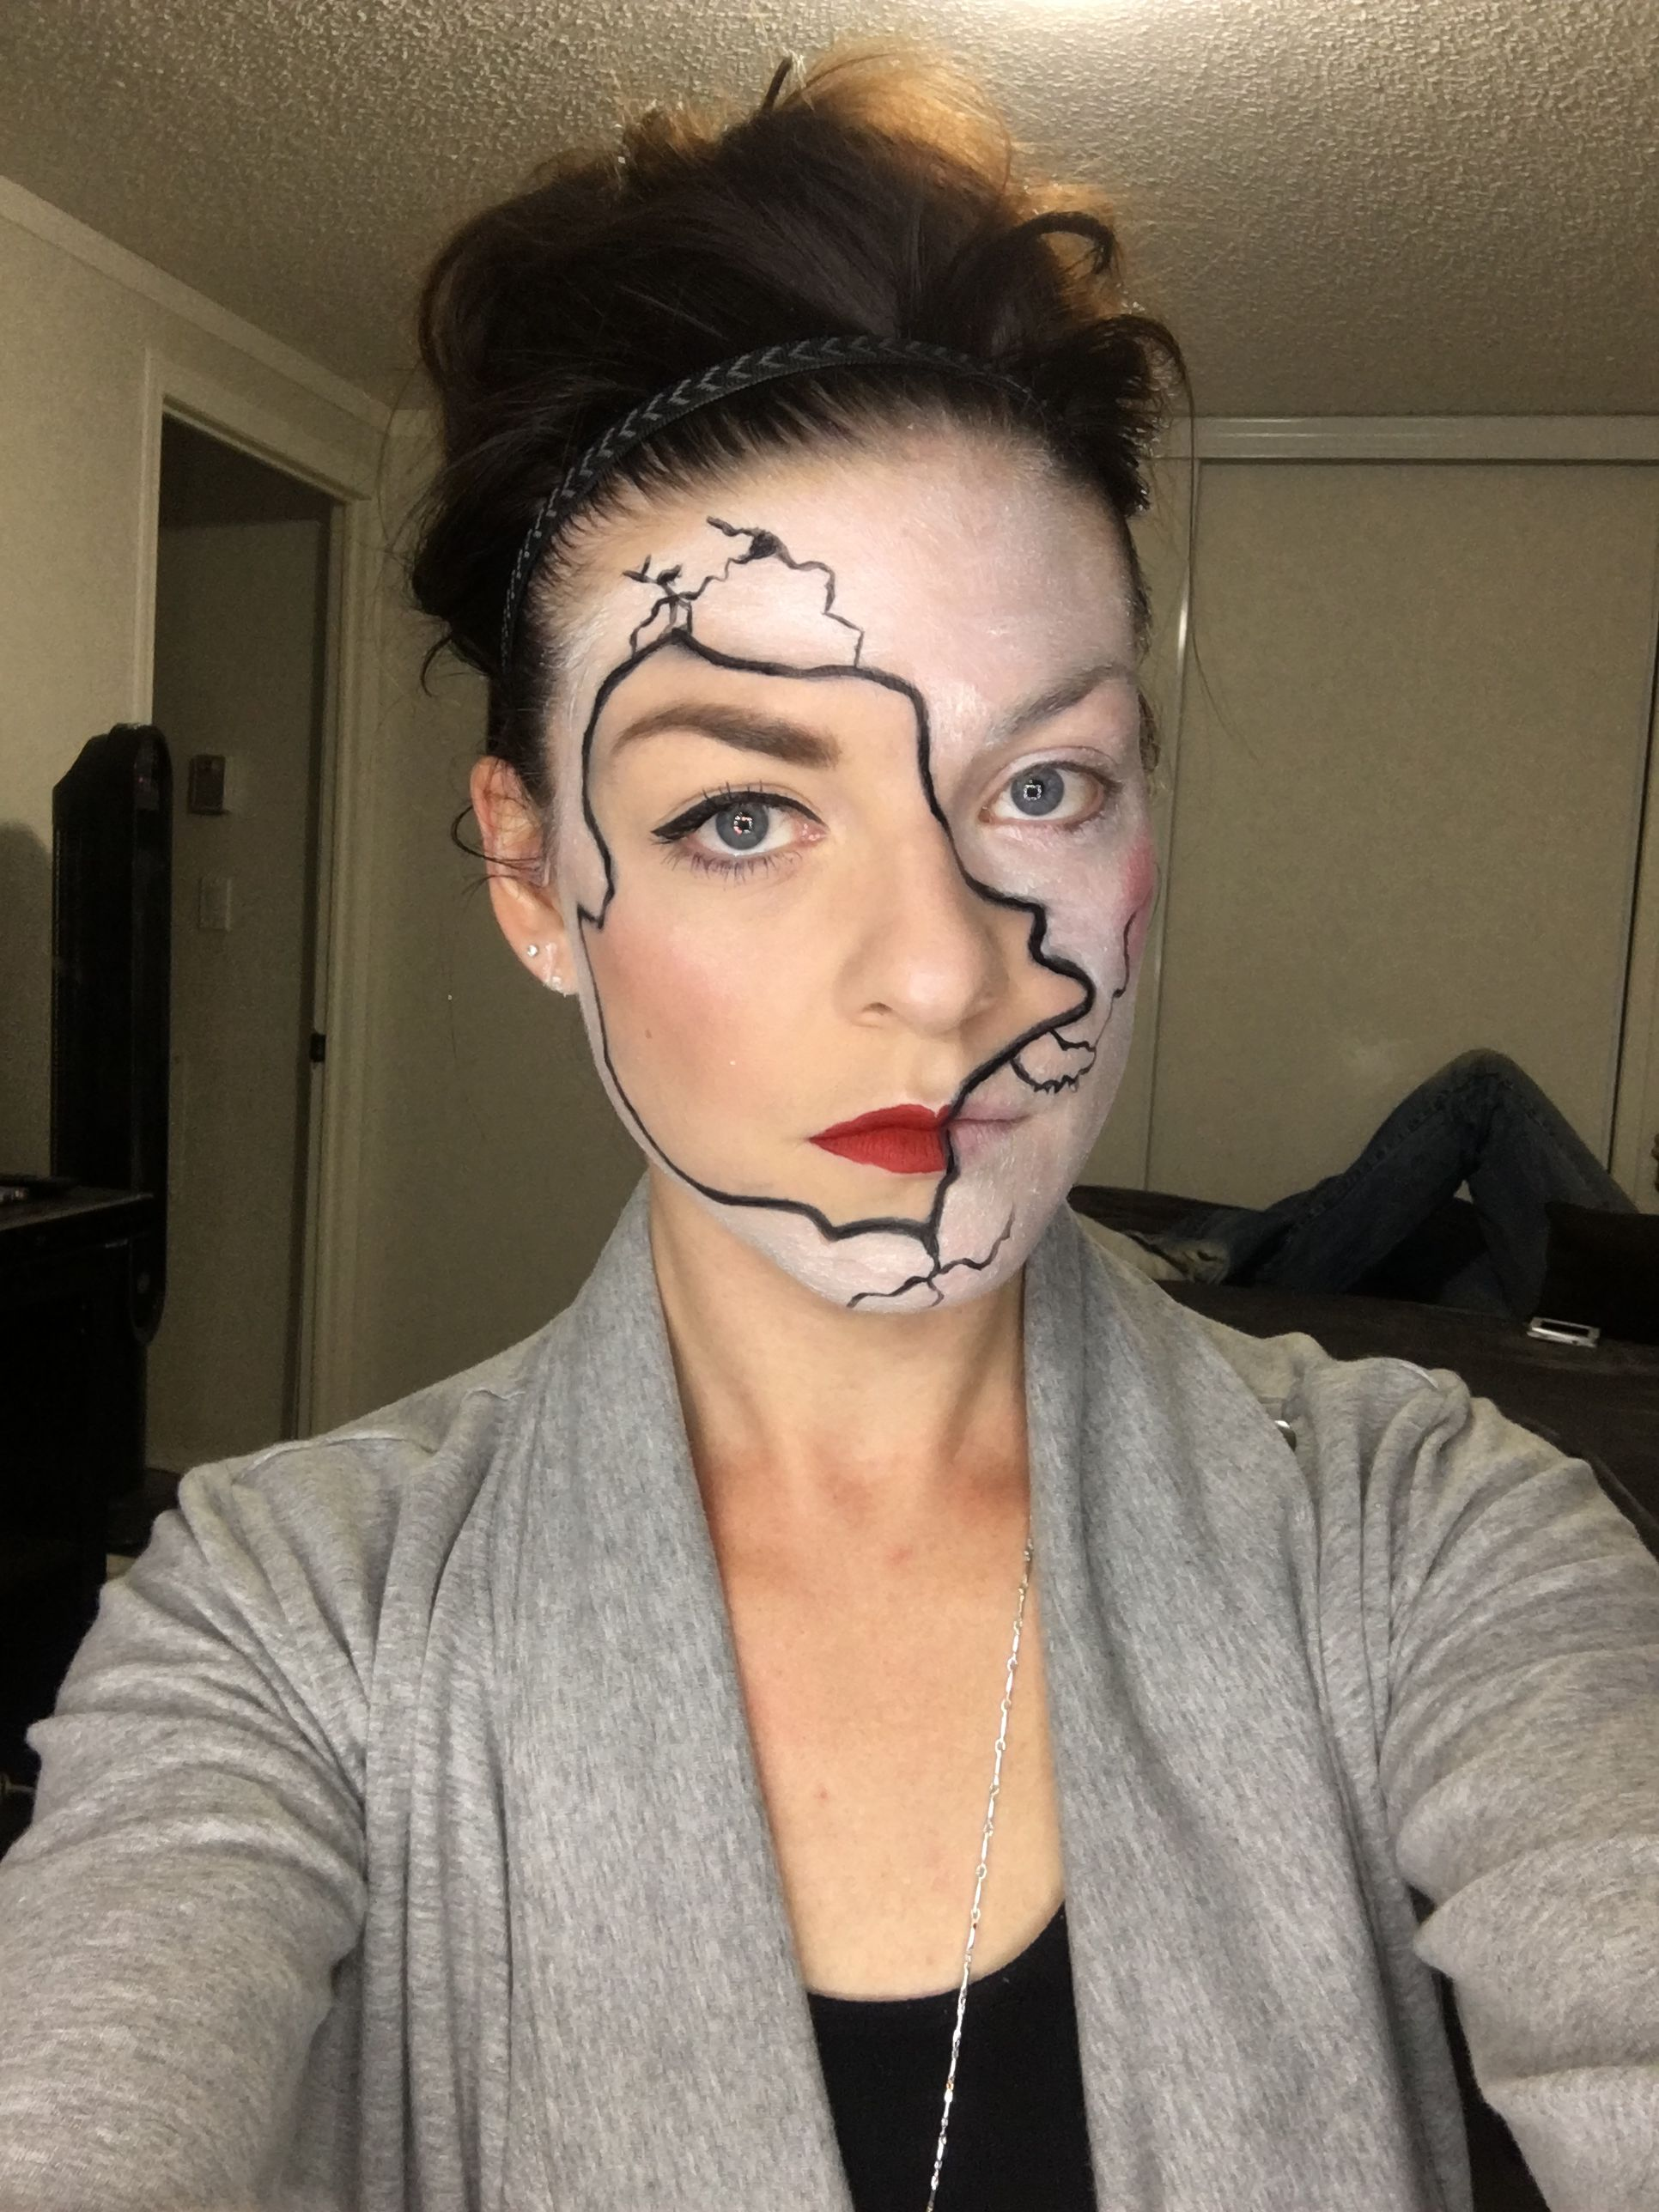 Cracked doll younique halloween (With images